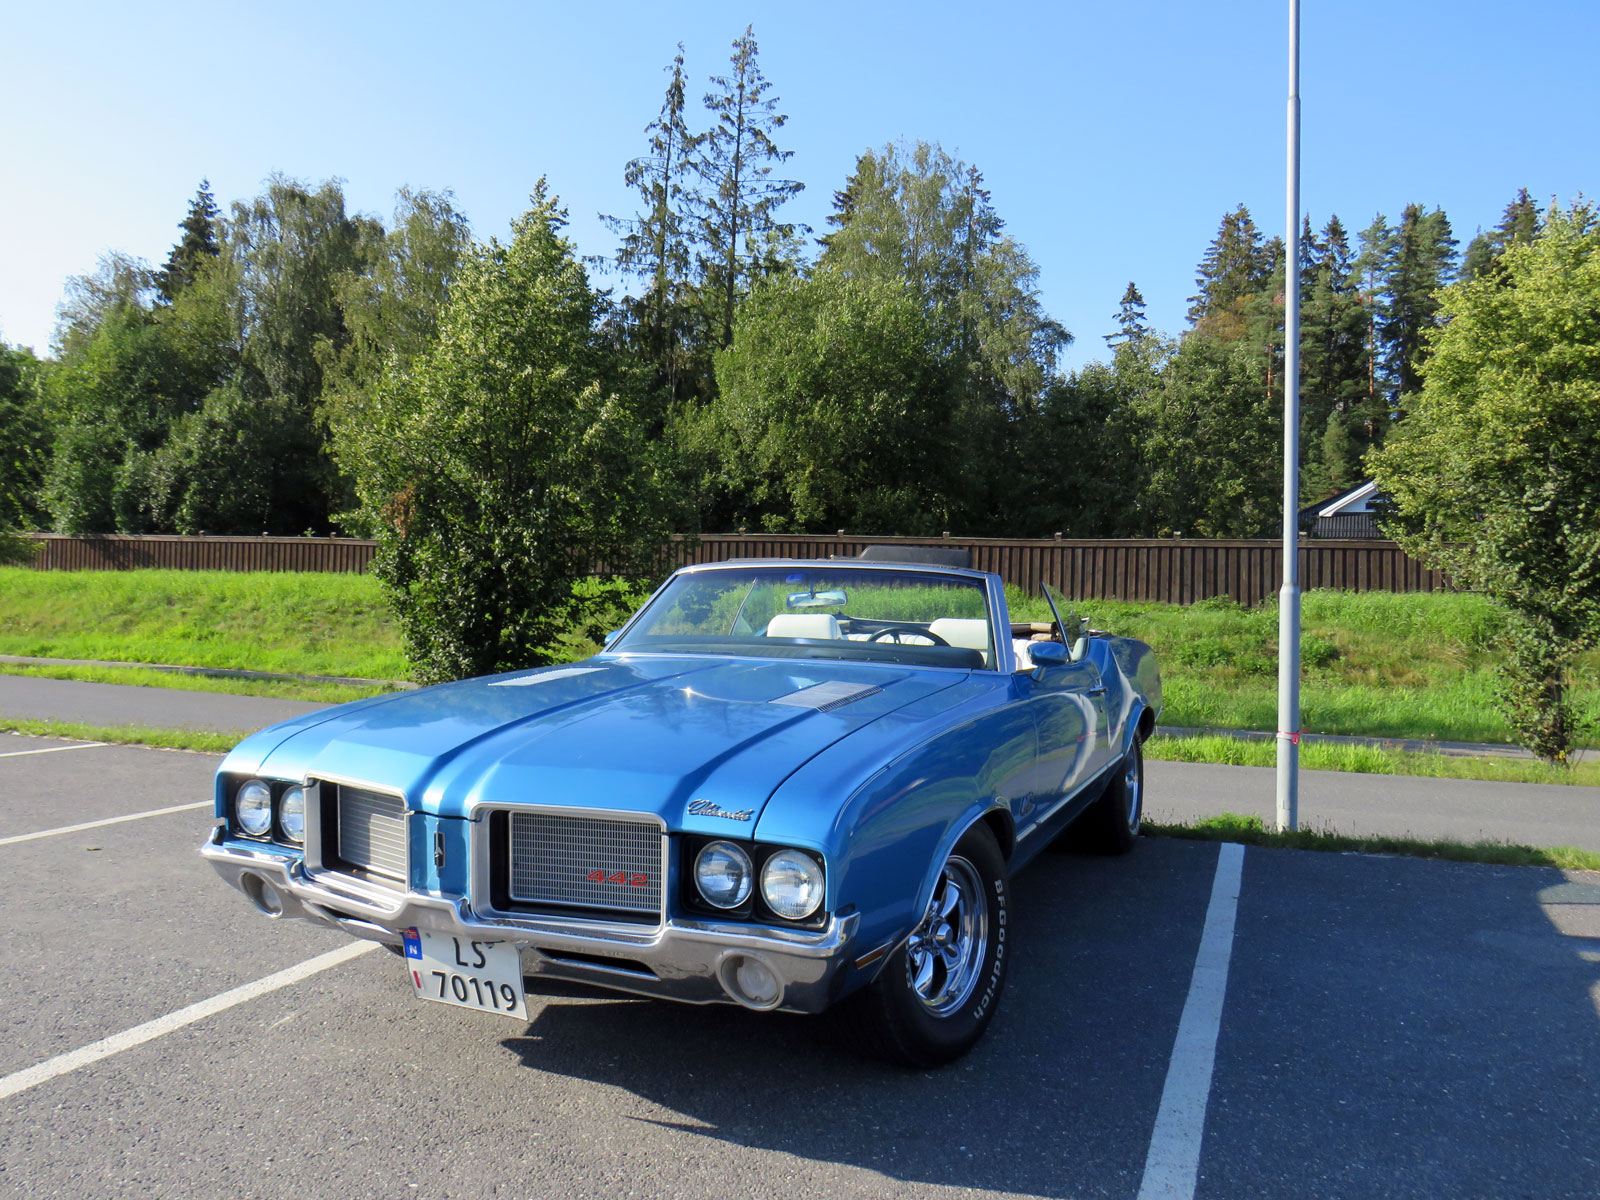 1972 OLDSMOBILE 442 Convertible Cutlass supreme